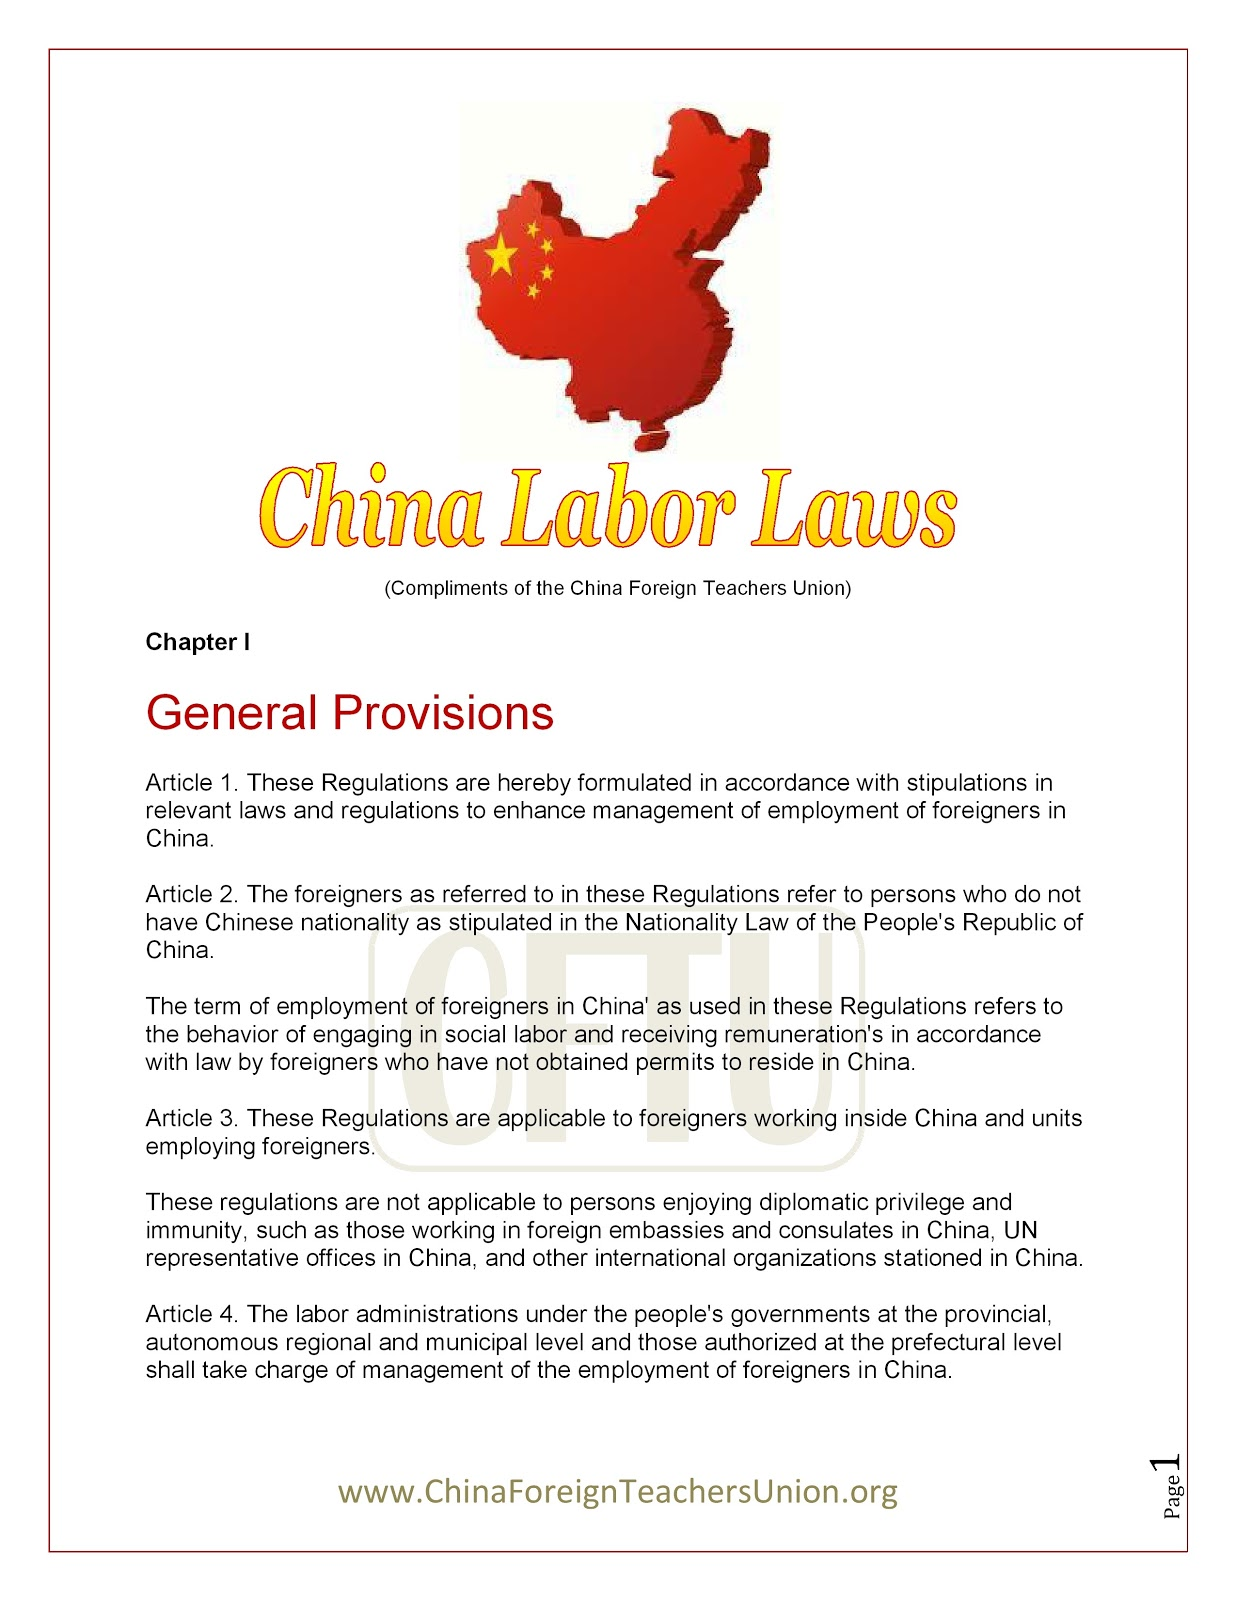 """chinese labor relations """"this is probably the thing that keeps xi jinping up at night,"""" said eli friedman, a scholar at cornell university who studies chinese labor issues."""